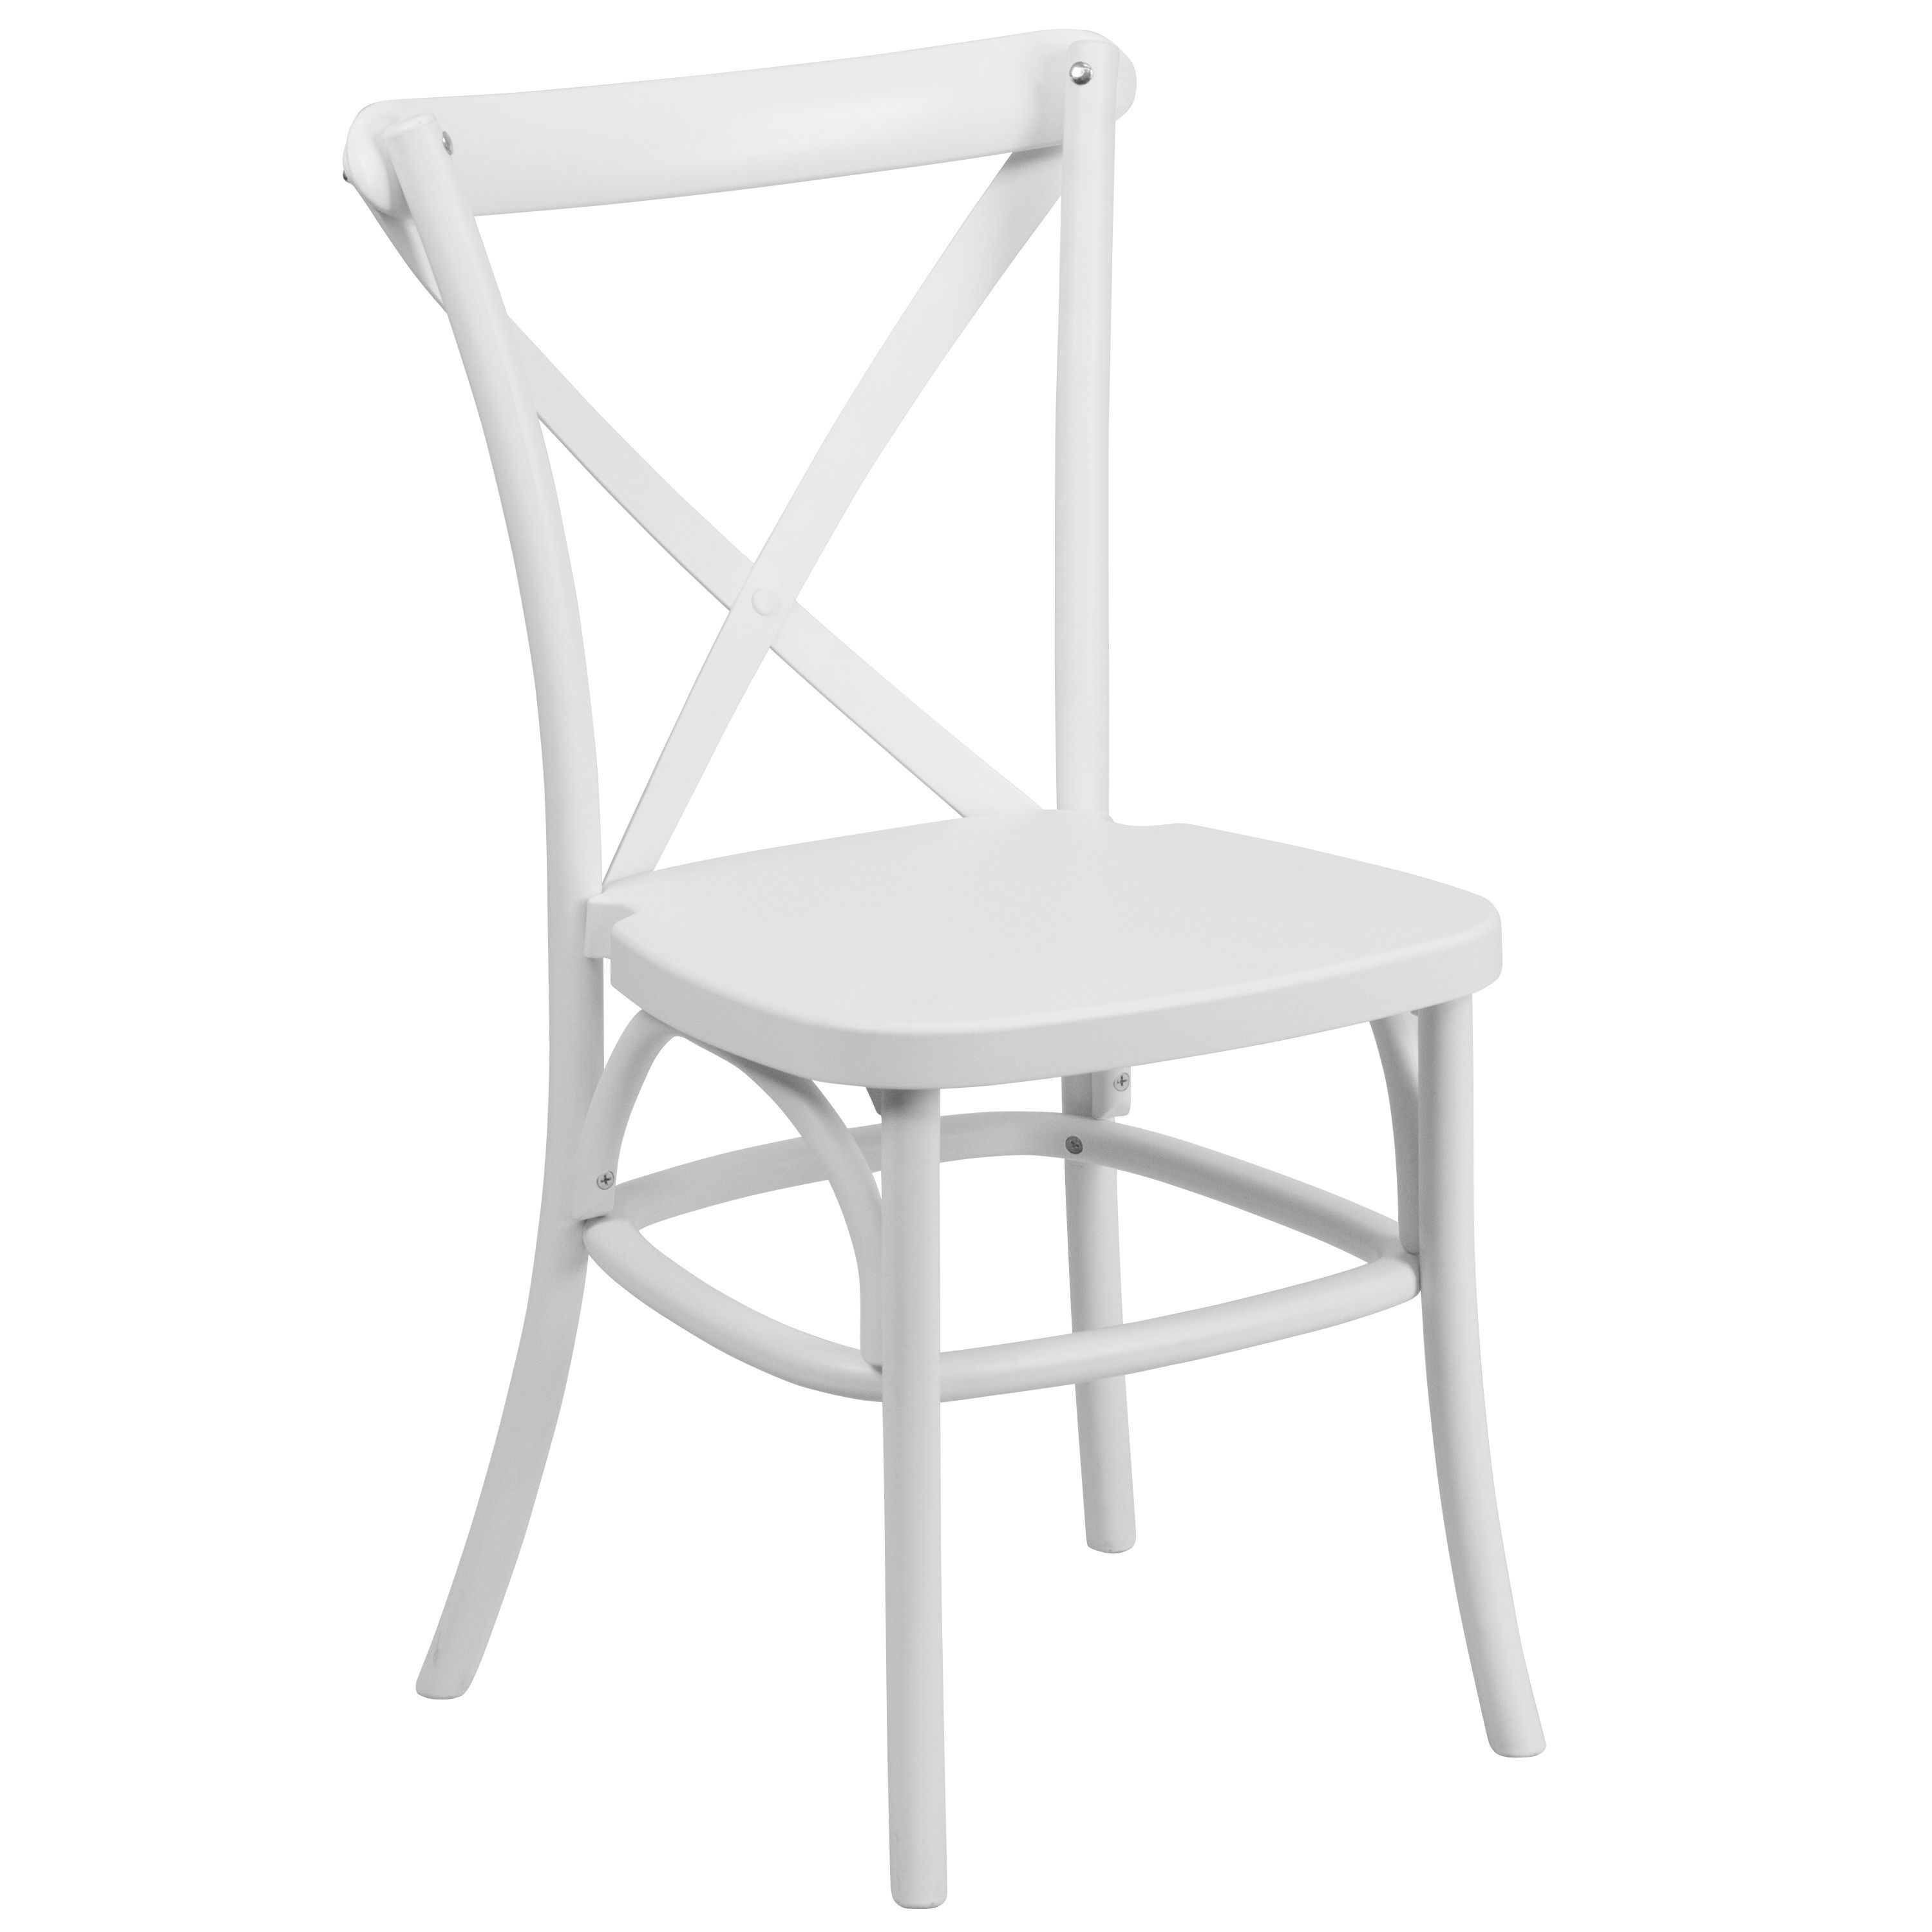 Saber Bistro Resin Cross Back Design White Stack Dining Chairs 1